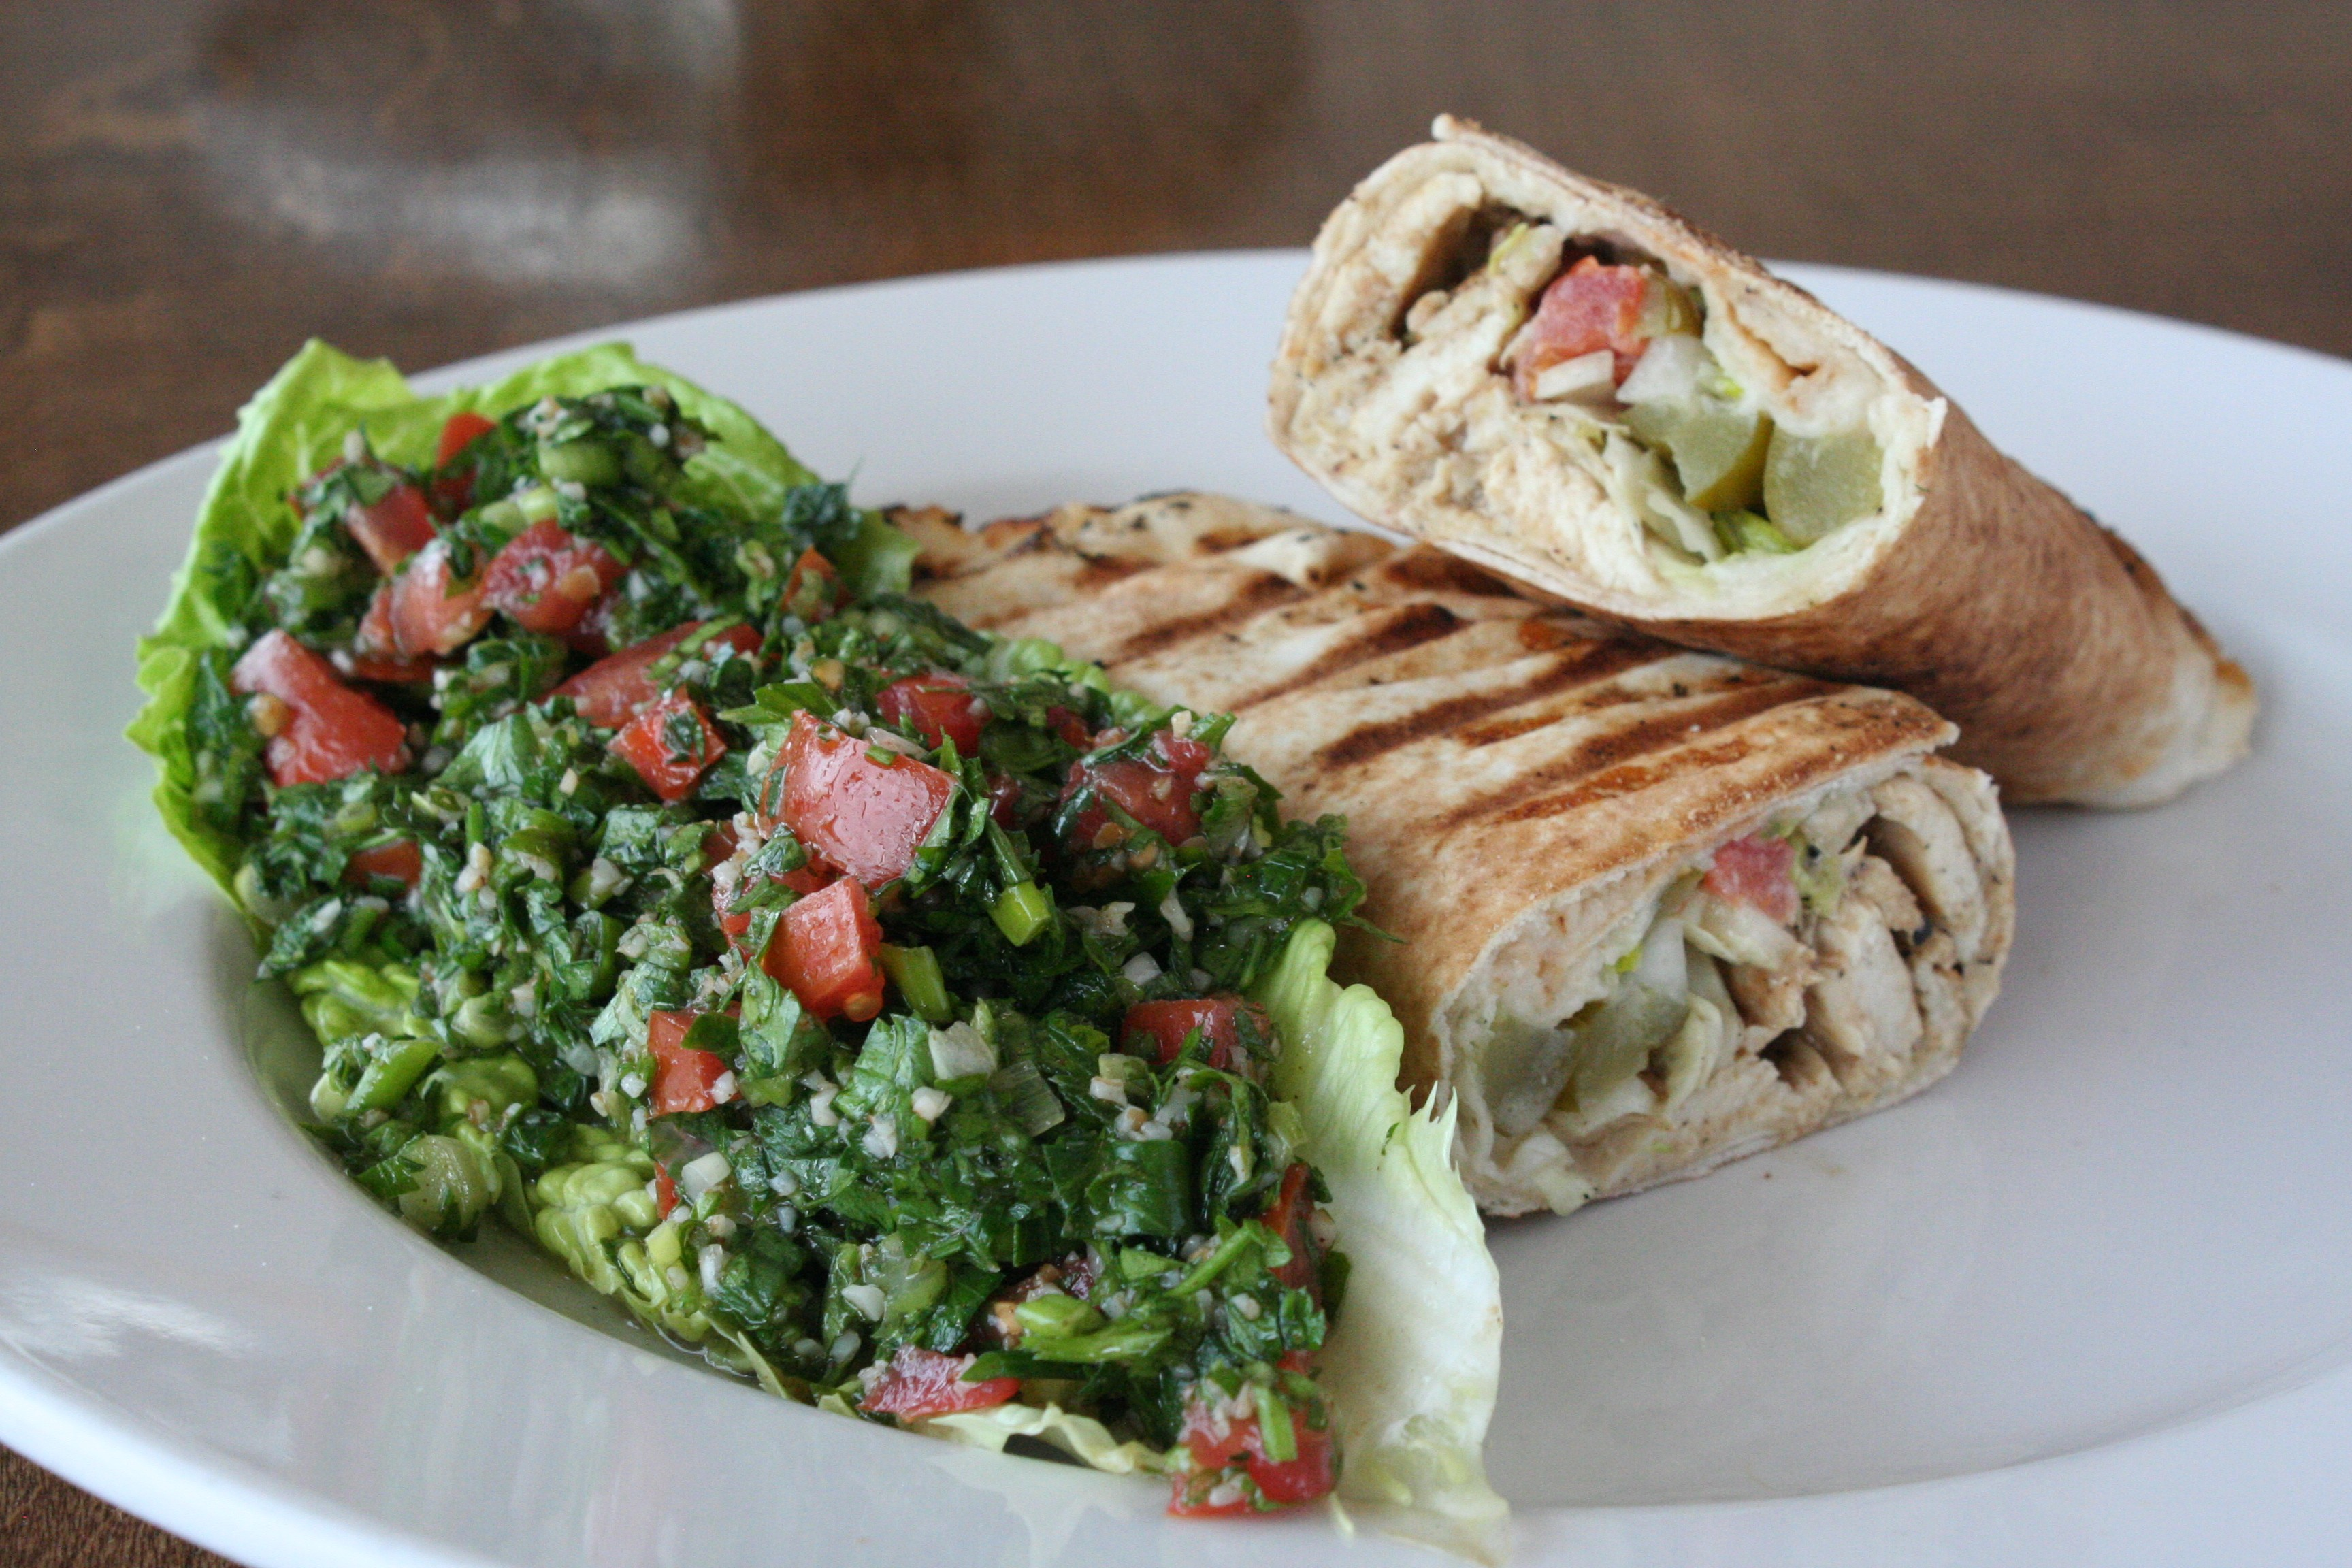 phoenicia mediterranean deli brings lebanese-inspired food to west